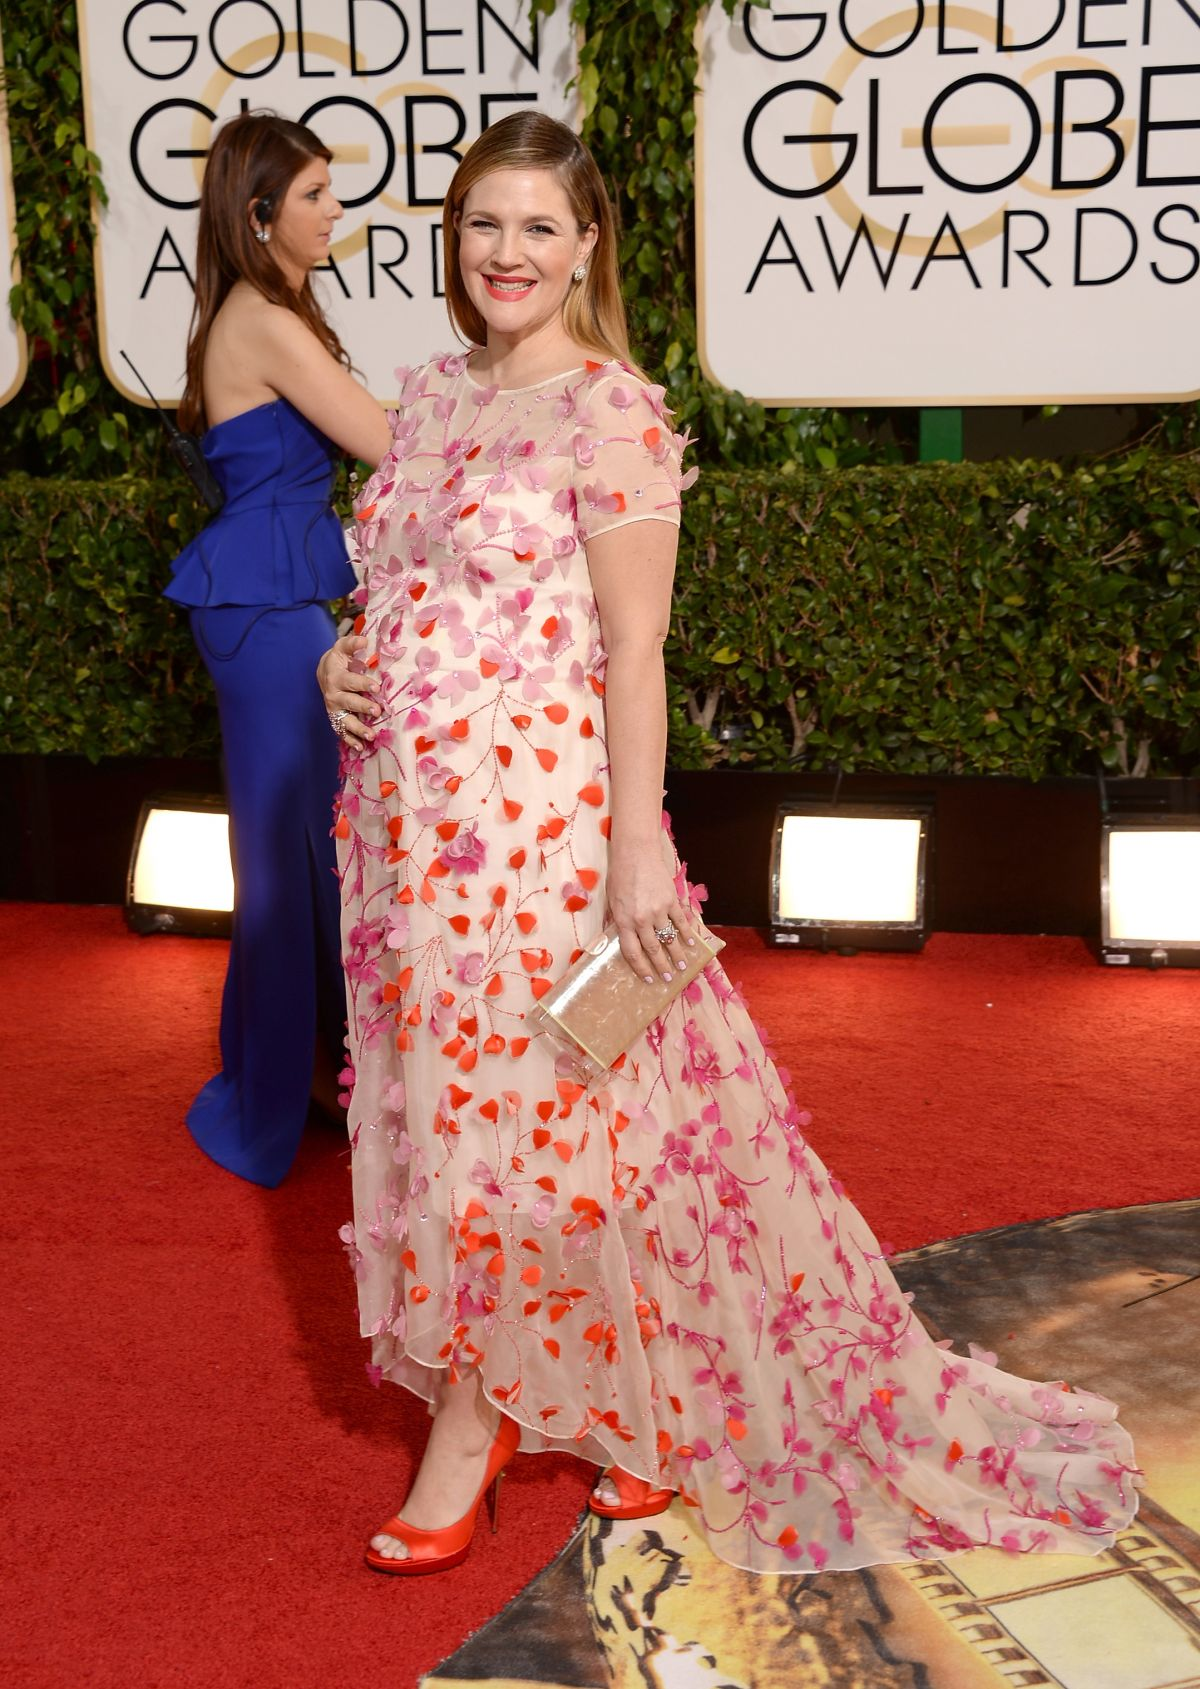 DREW BARRYMORE at 71st Annual Golden Globe Awards